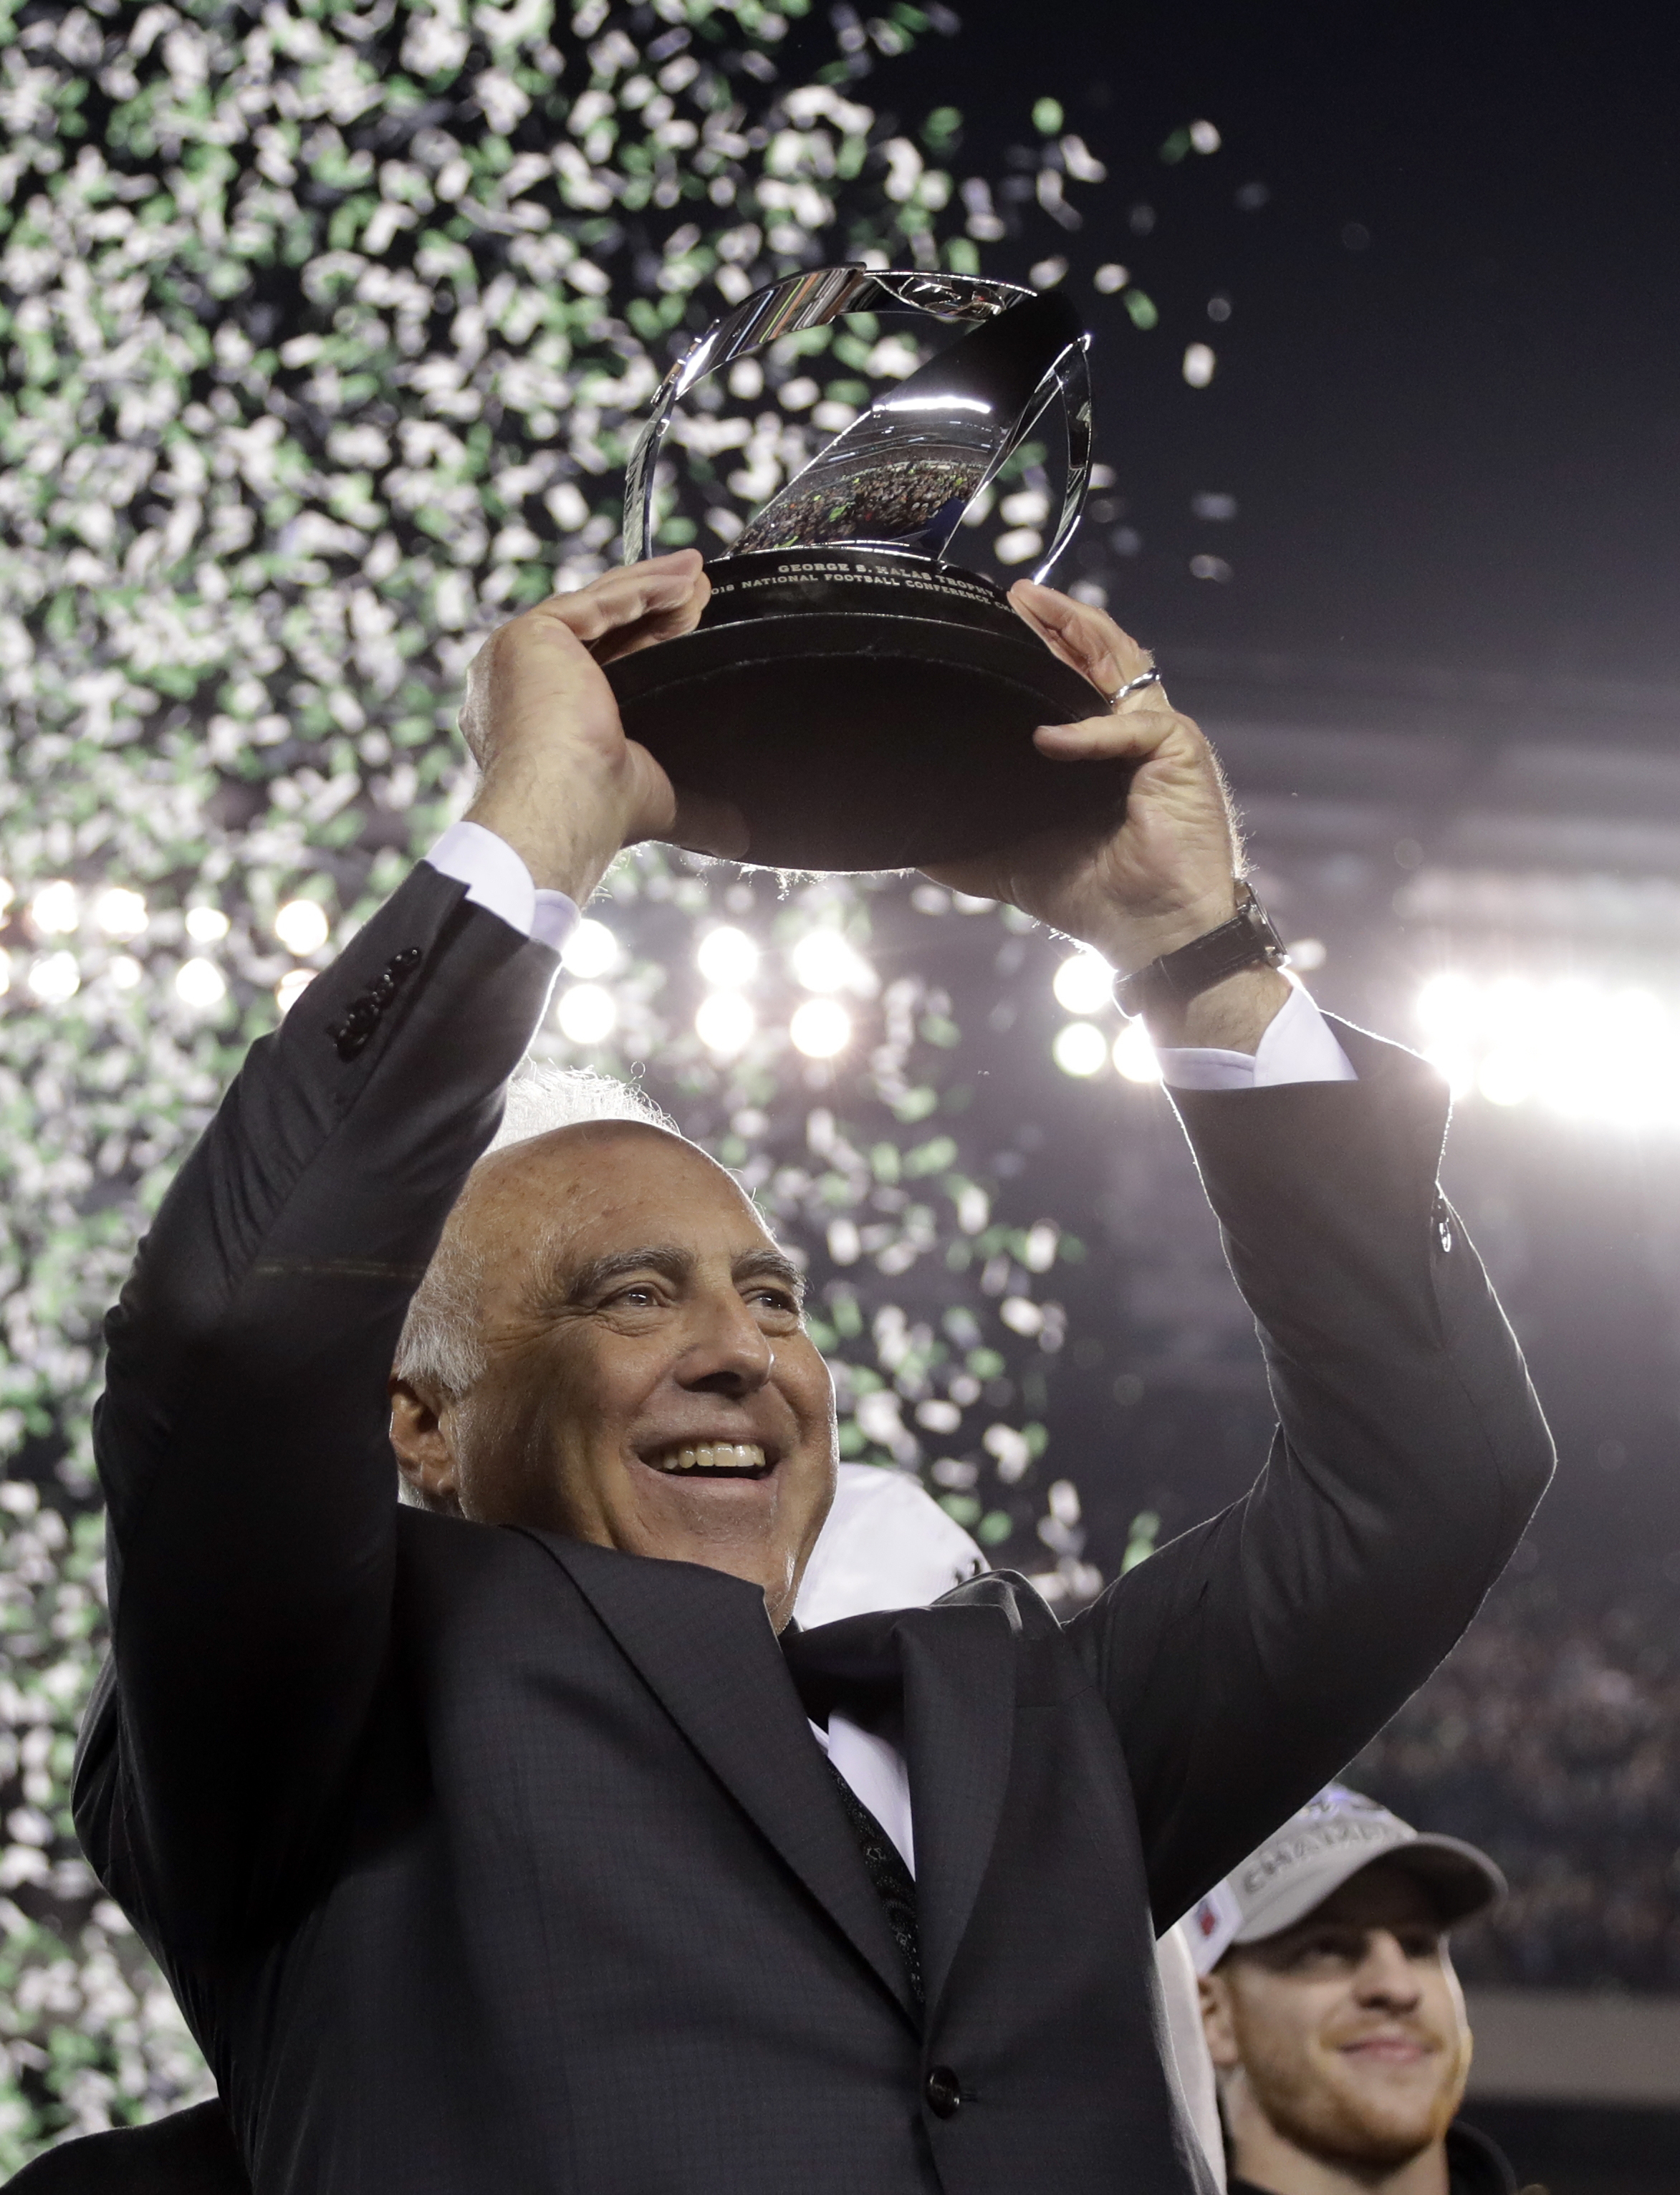 <div class='meta'><div class='origin-logo' data-origin='AP'></div><span class='caption-text' data-credit='AP Photo/Matt Slocum'>Philadelphia Eagles owner Jeffrey Lurie celebrates after the NFL football NFC championship game against the Minnesota Vikings Sunday, Jan. 21, 2018, in Philadelphia.</span></div>